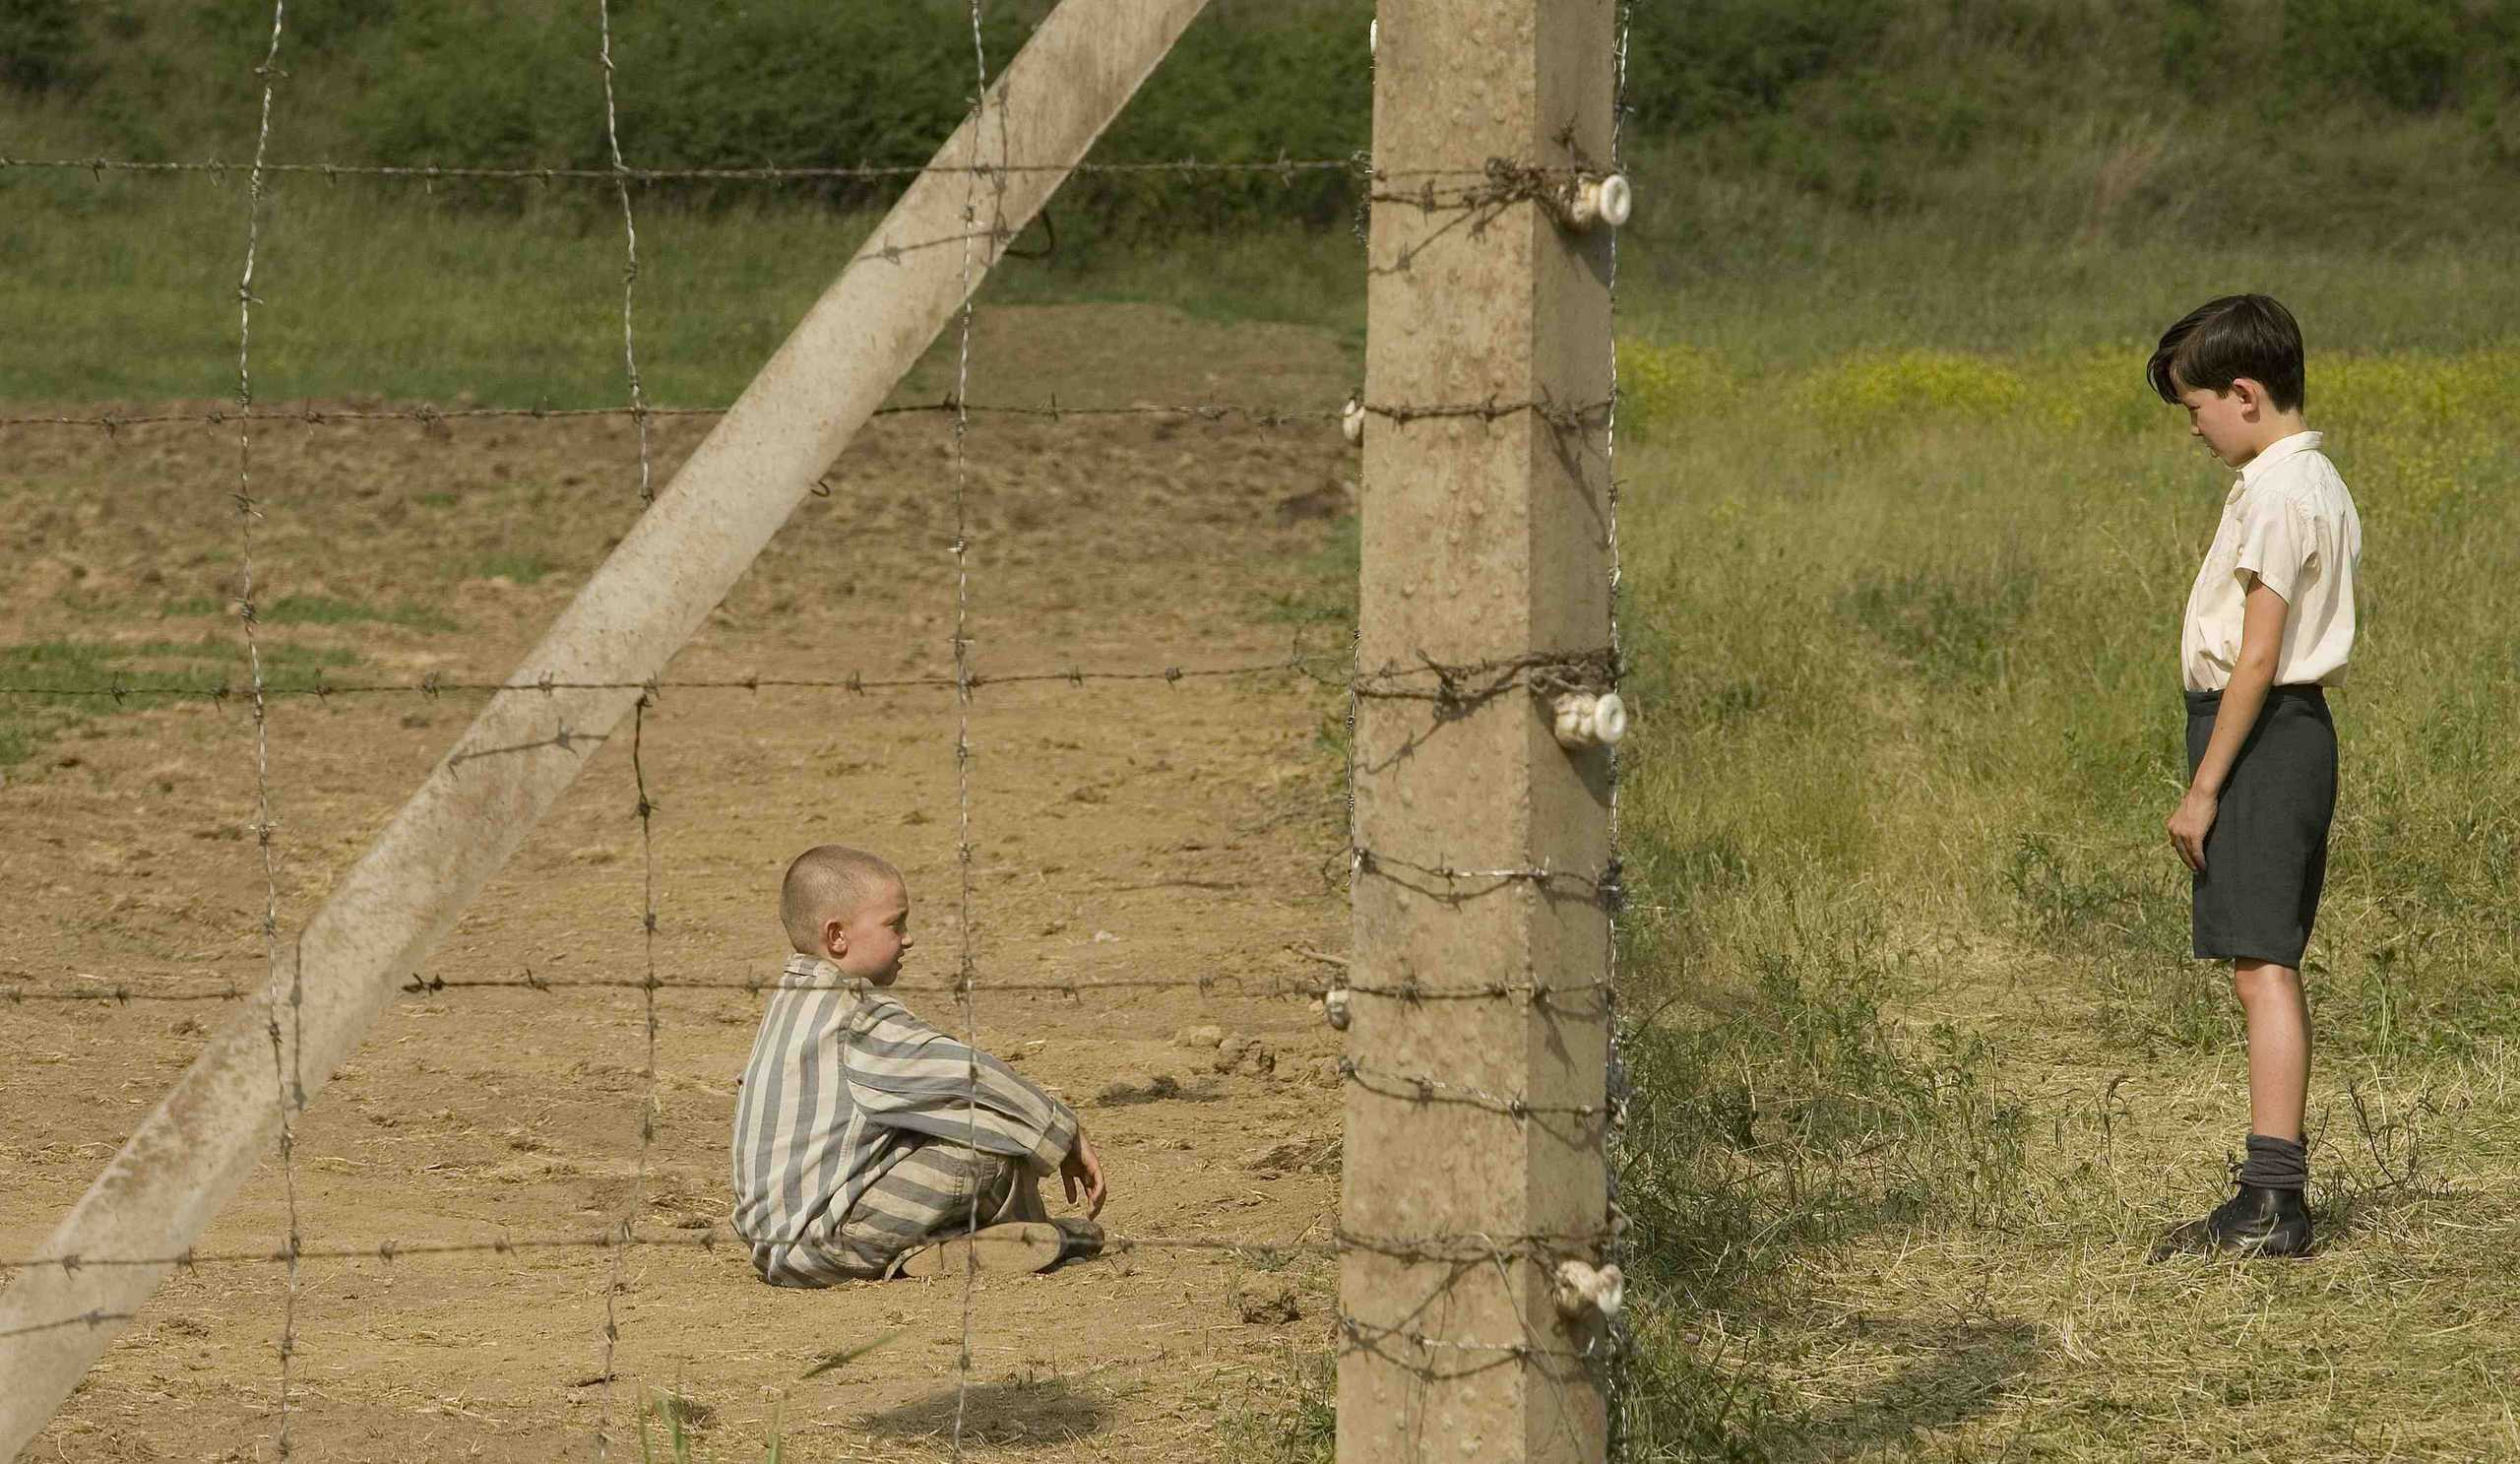 https://i0.wp.com/images2.fanpop.com/images/photos/6900000/The-Boy-In-The-Striped-Pyjamas-the-boy-in-the-striped-pyjamas-6938241-2560-1487.jpg